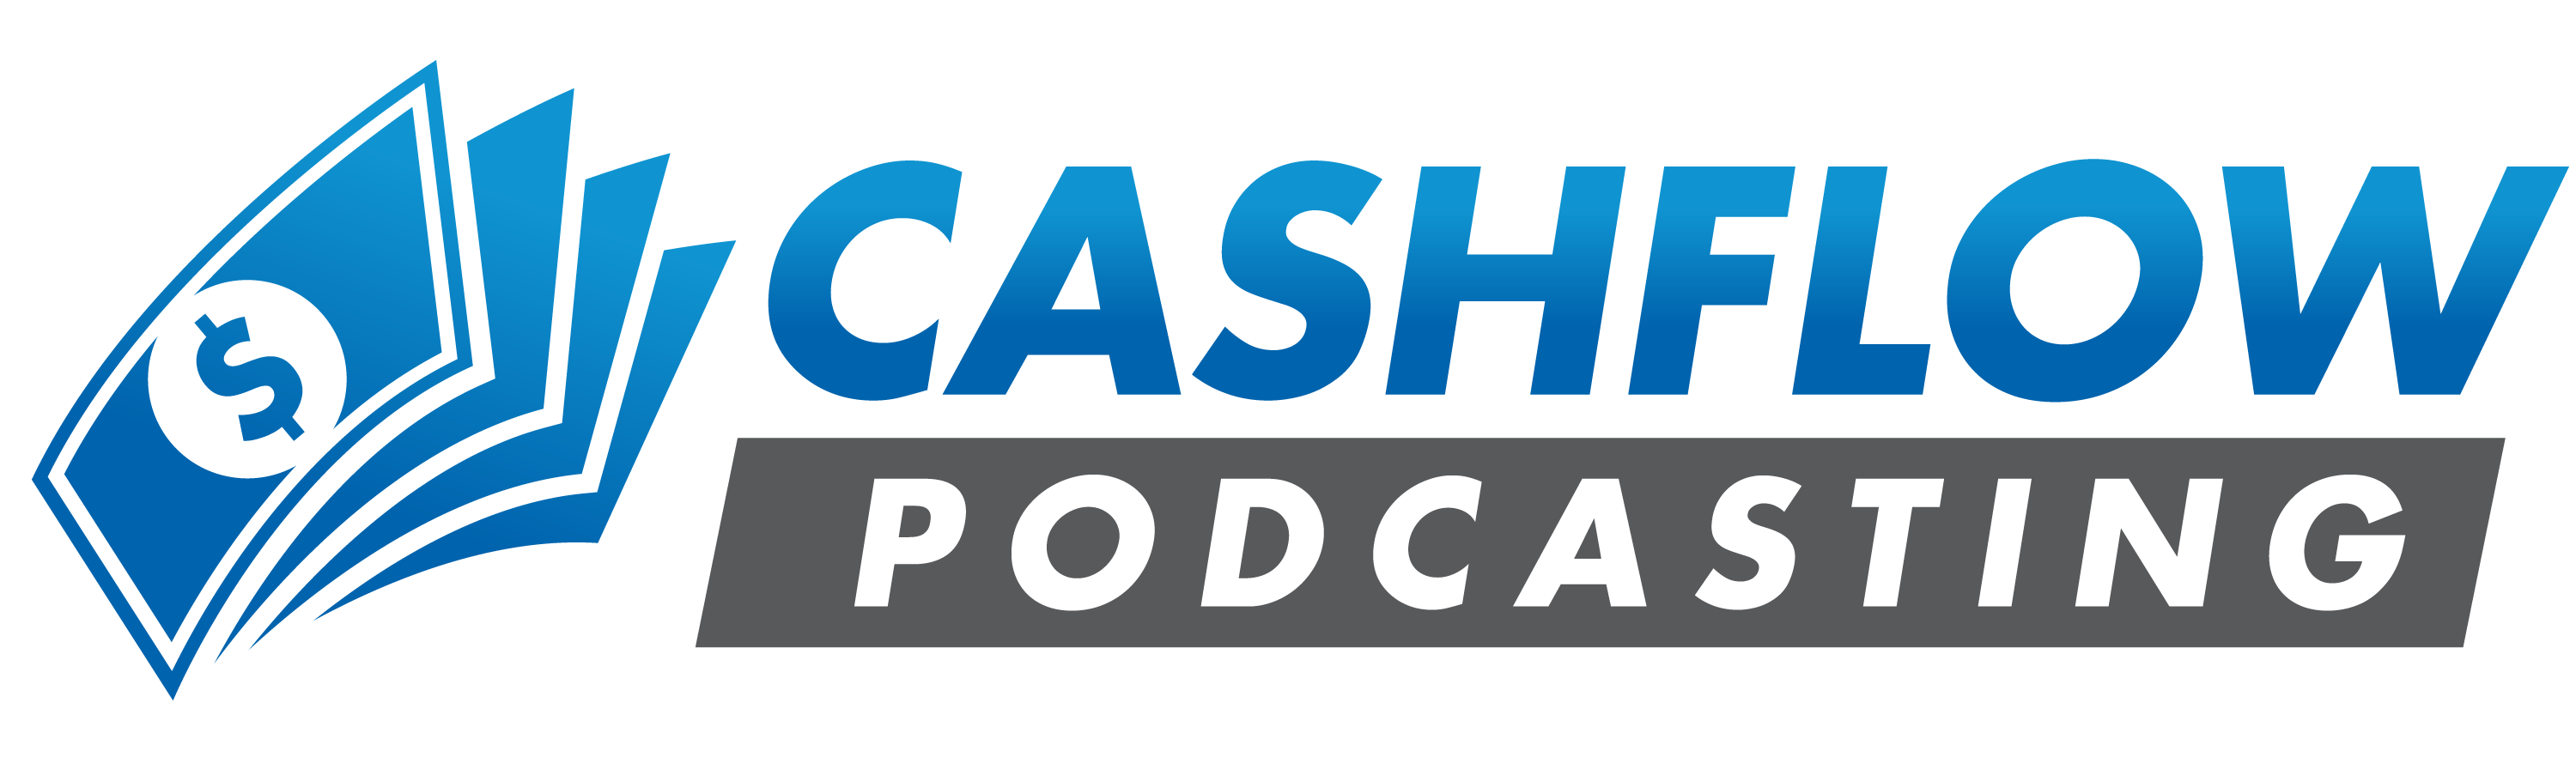 Cashflow Podcasting | Podcasting Services For Thought Leaders